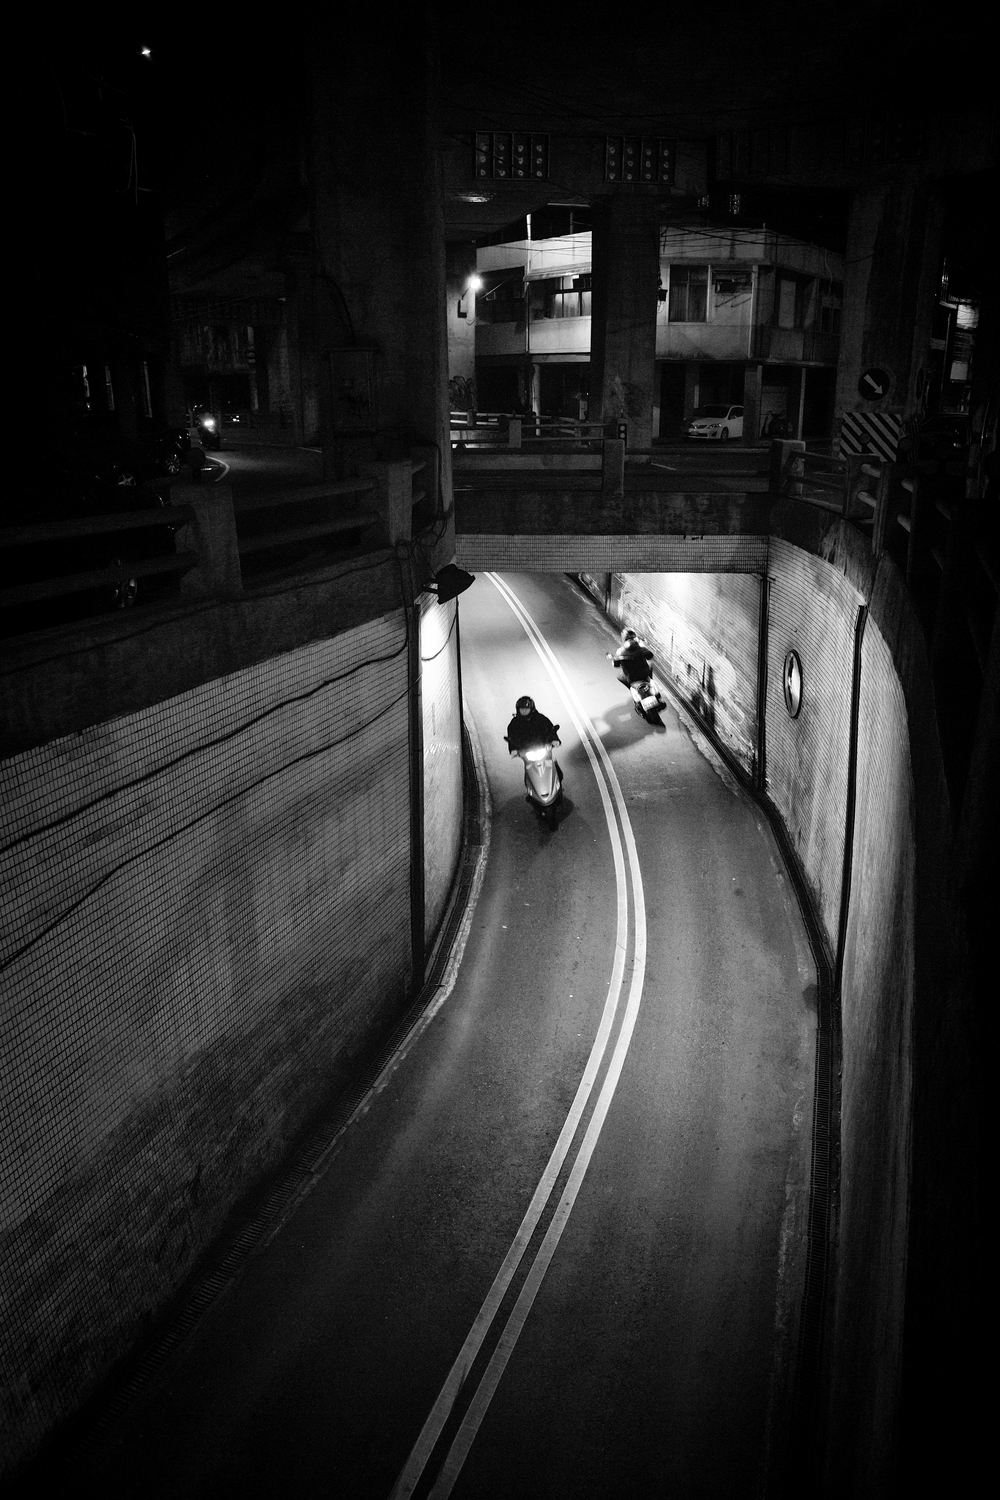 Scooter traffic through an underpass near Zhongli Train Station (中壢車站附近的地下道)